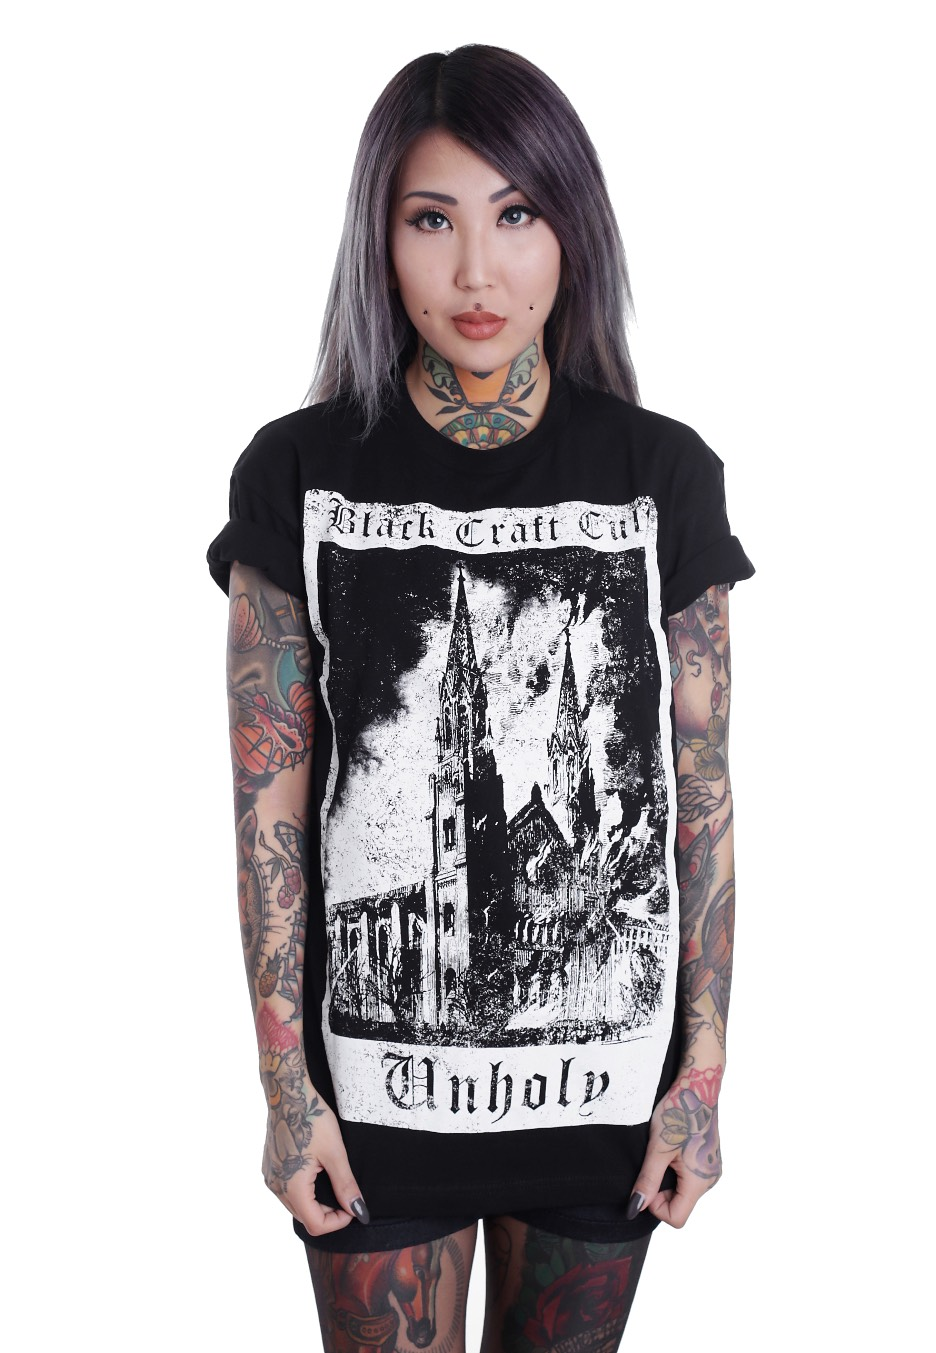 Black Craft Cult - Unholy Tarot - T-Shirt - Streetwear Shop - Impericoncom Worldwide-8385